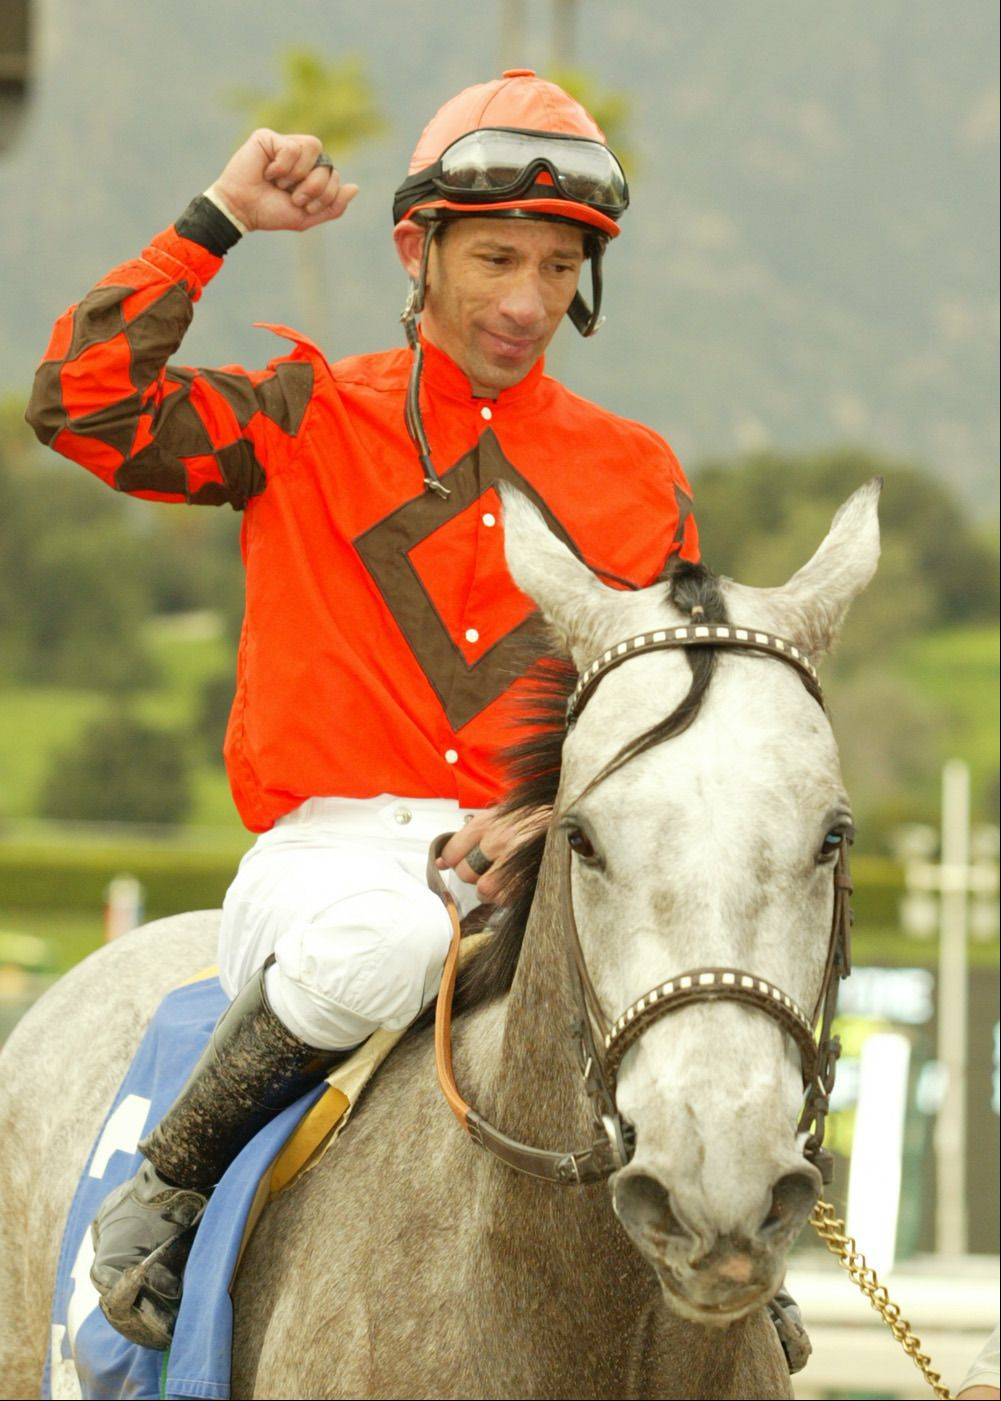 In this photo provided by Benoit Photo, jockey Rene Douglas gestures after riding Grey Misty to victory in the fifth race Thursday, Jan. 13, 2005, at Santa Anita Park in Arcadia, Calif. With the win, Douglas becomes the 122nd rider in North America to win 3,000 races.(AP Photo/Benoit Photo)